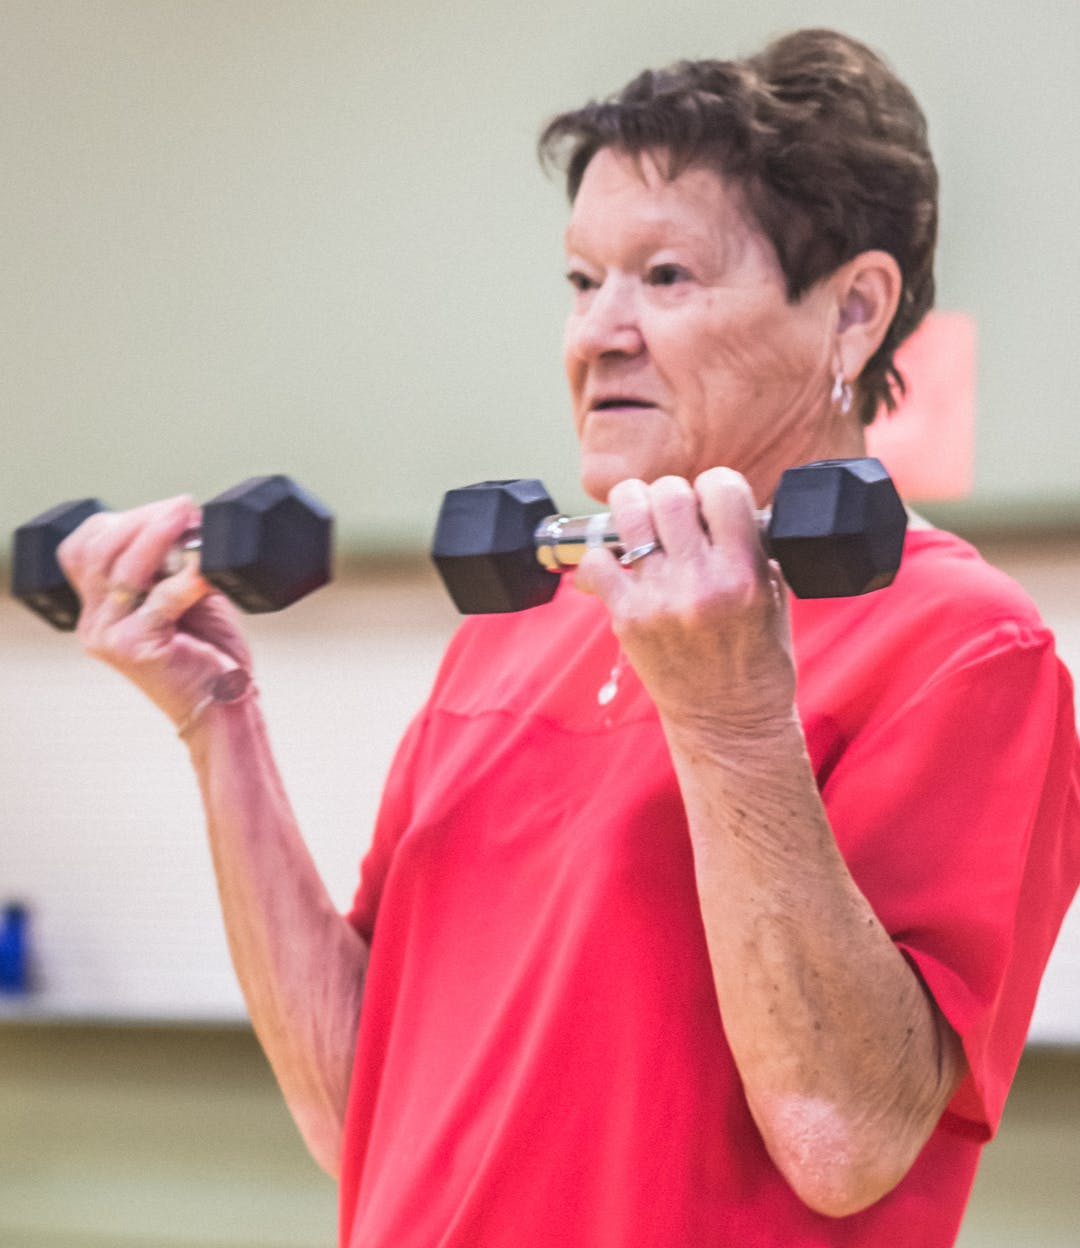 Lady with weights exercising